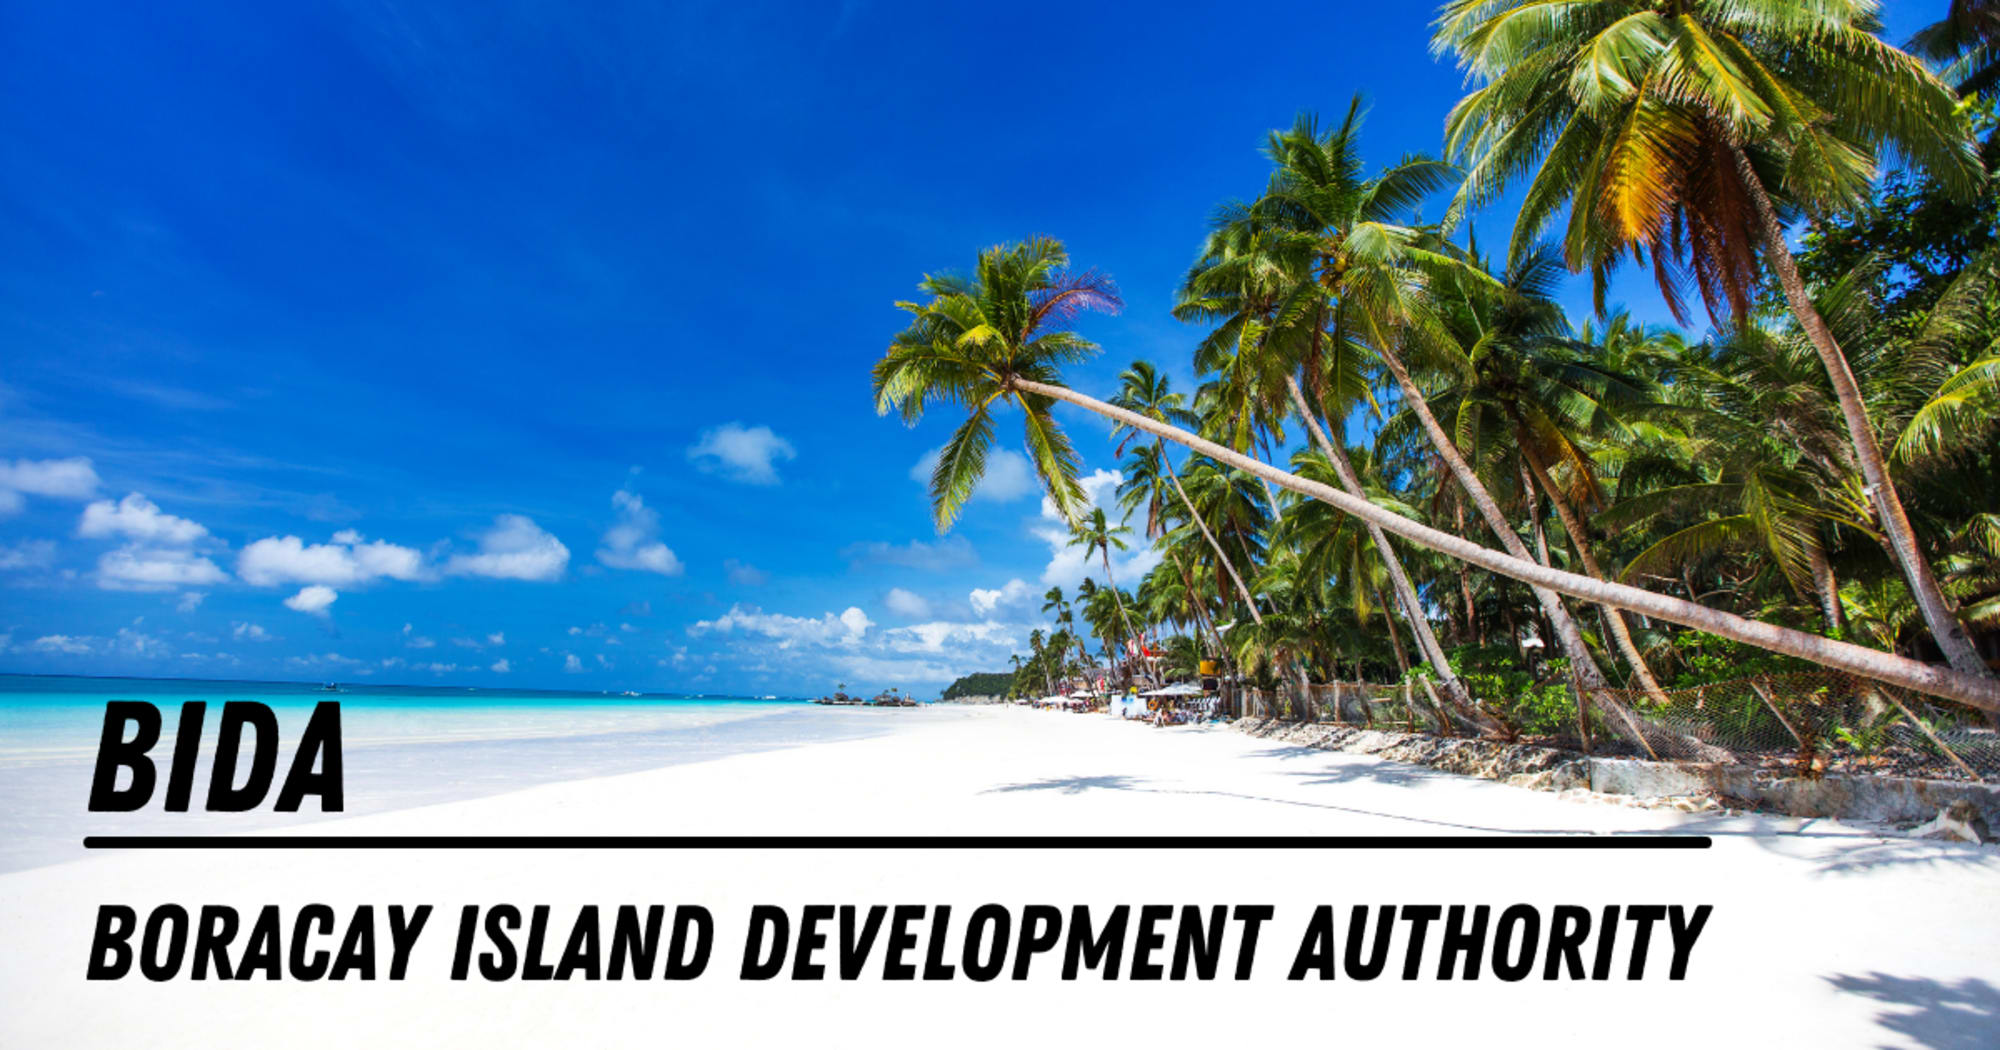 'Authority' proposed to oversee Boracay Island